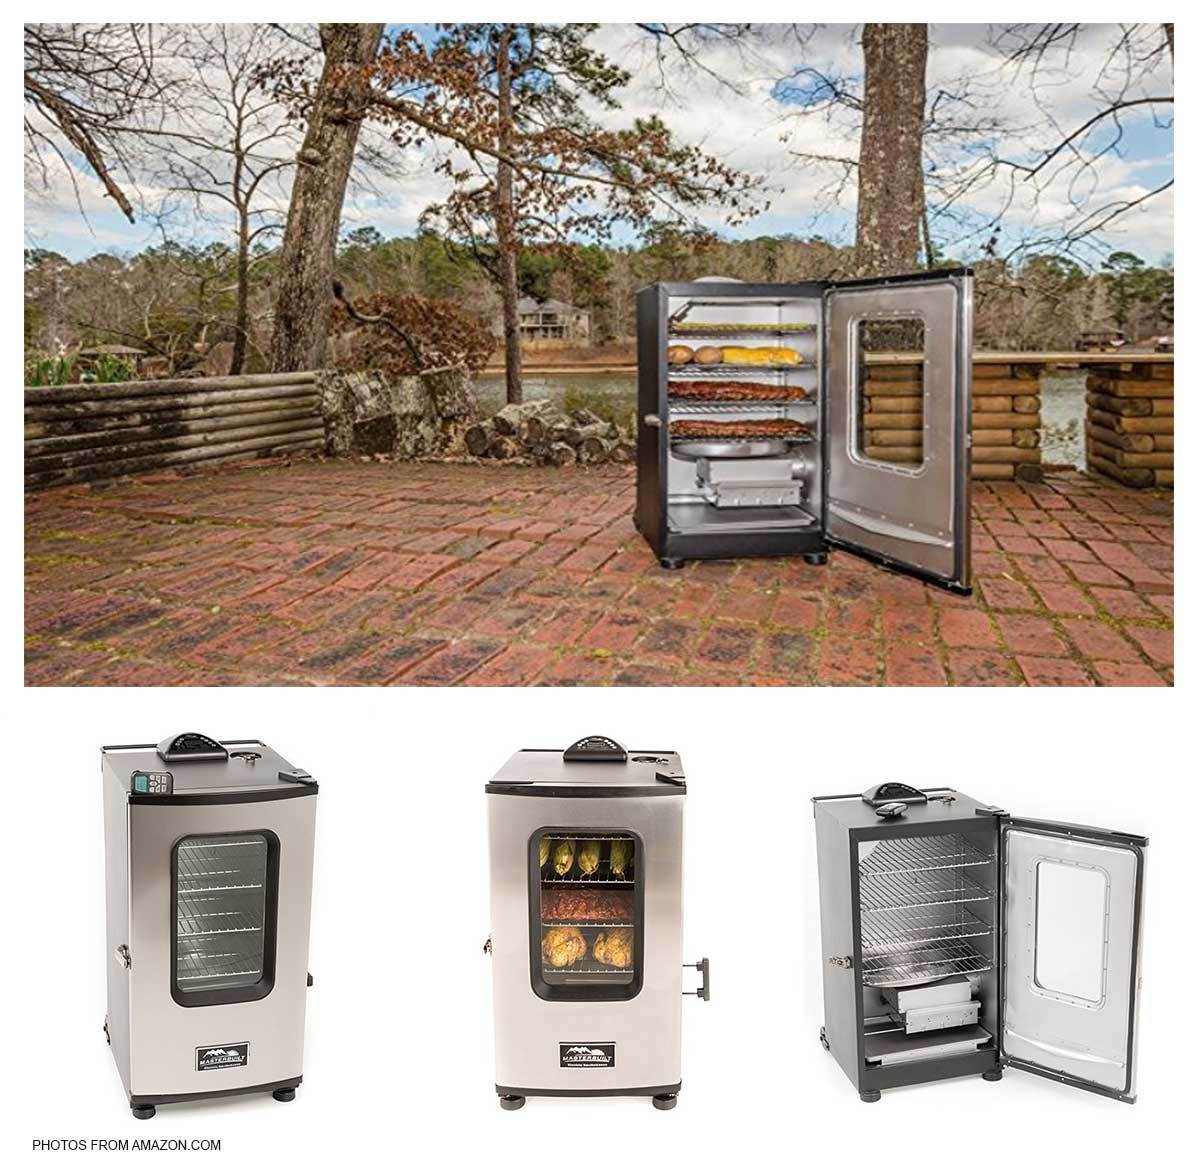 Various images of the Masterbuilt Electric Smoker, some with food on the cooking racks and some without. photo